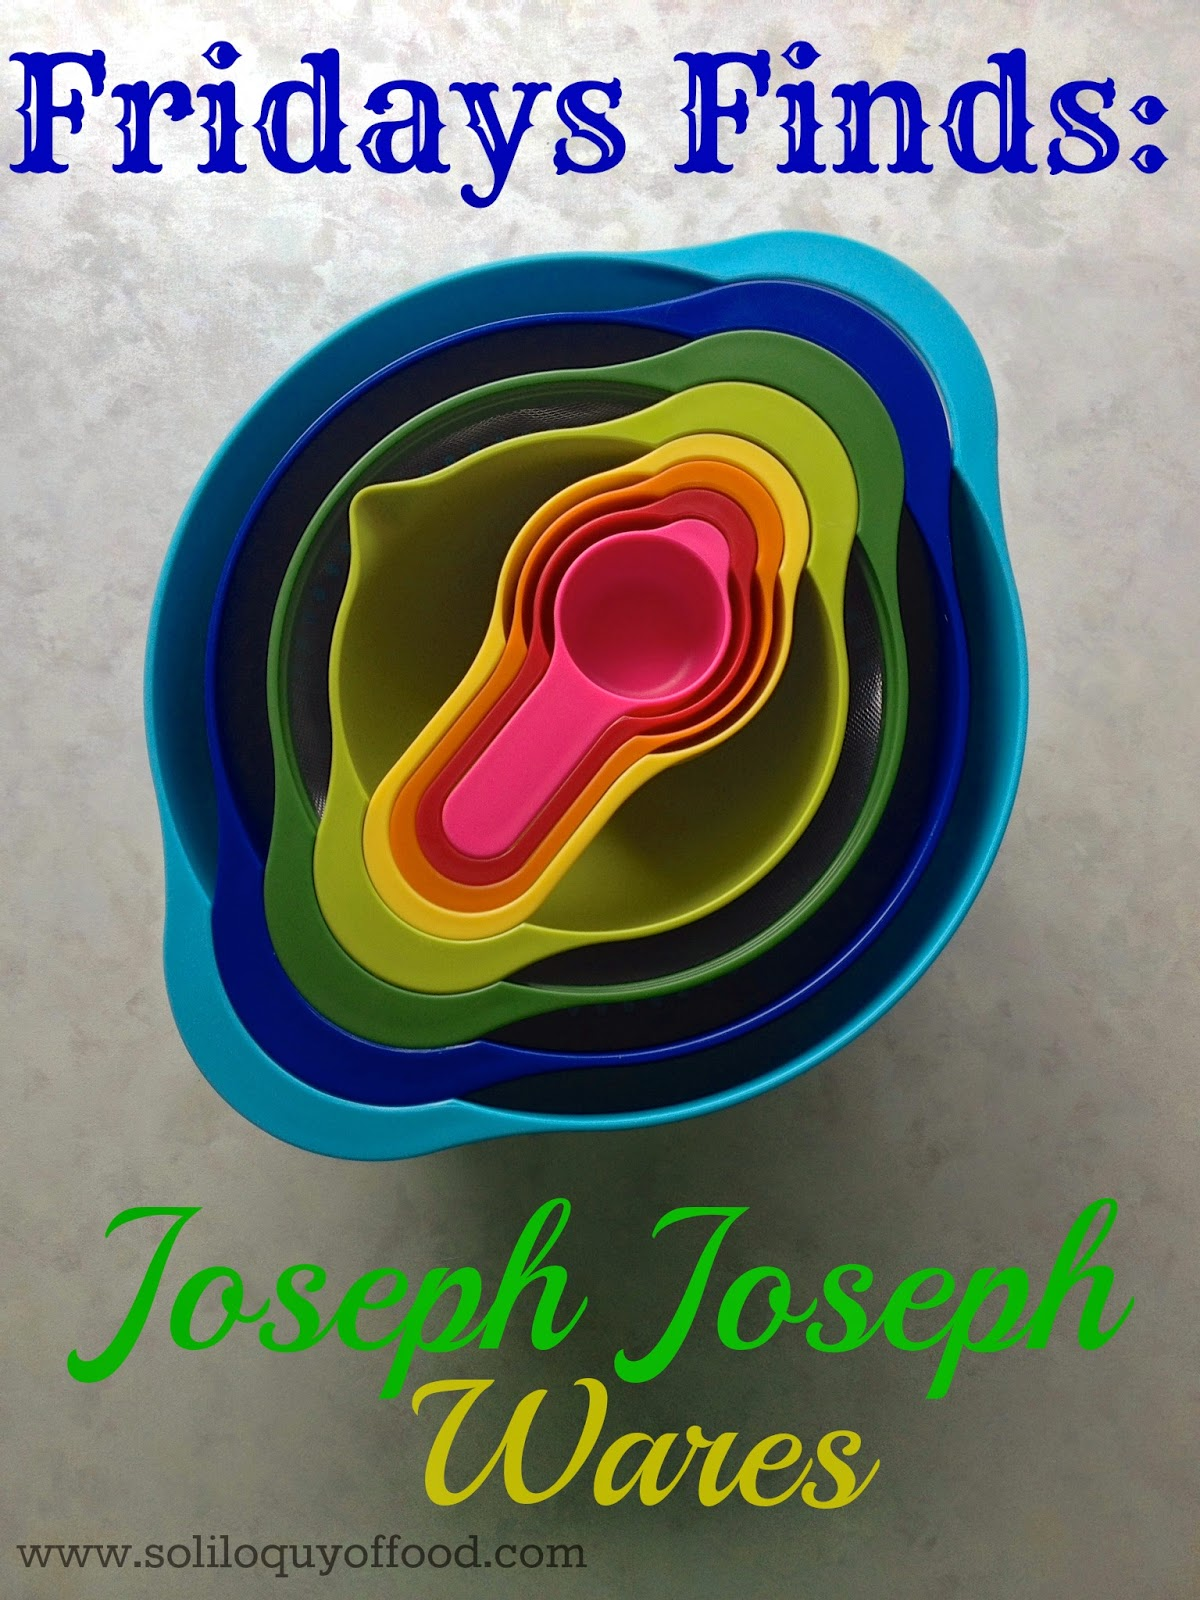 Fridays Find:  Joseph Joseph Wares - Nest™8 Plus - www.soliloquyoffood.com